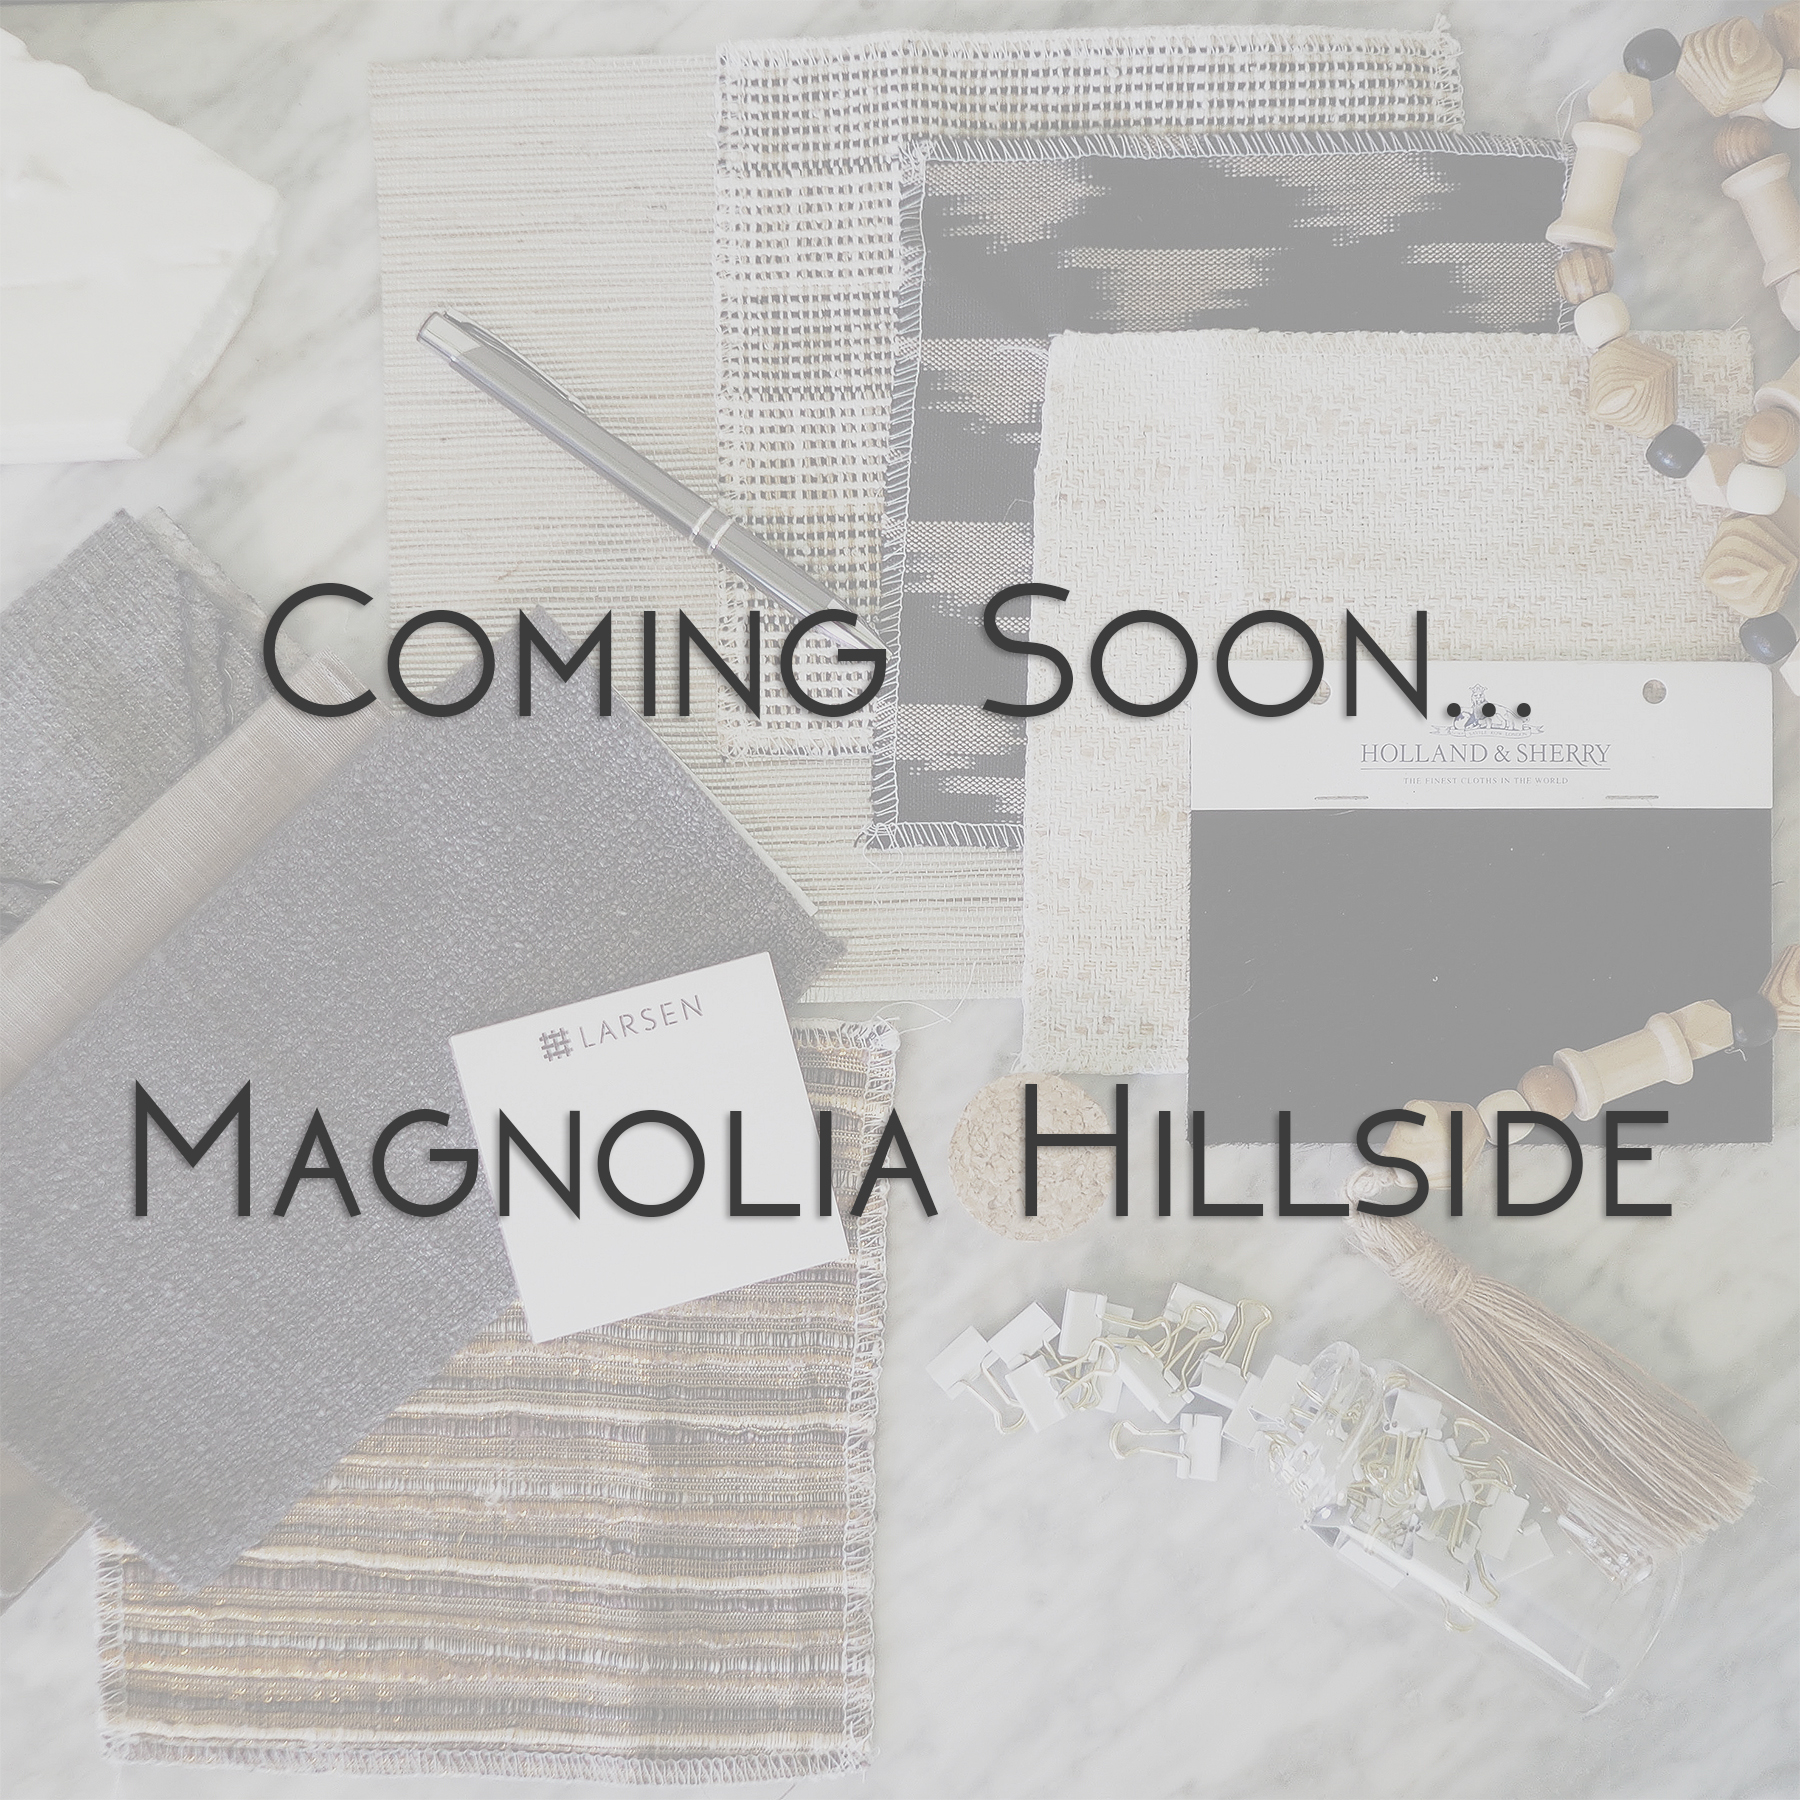 Coming Soon - Magnolia Hillside.jpg